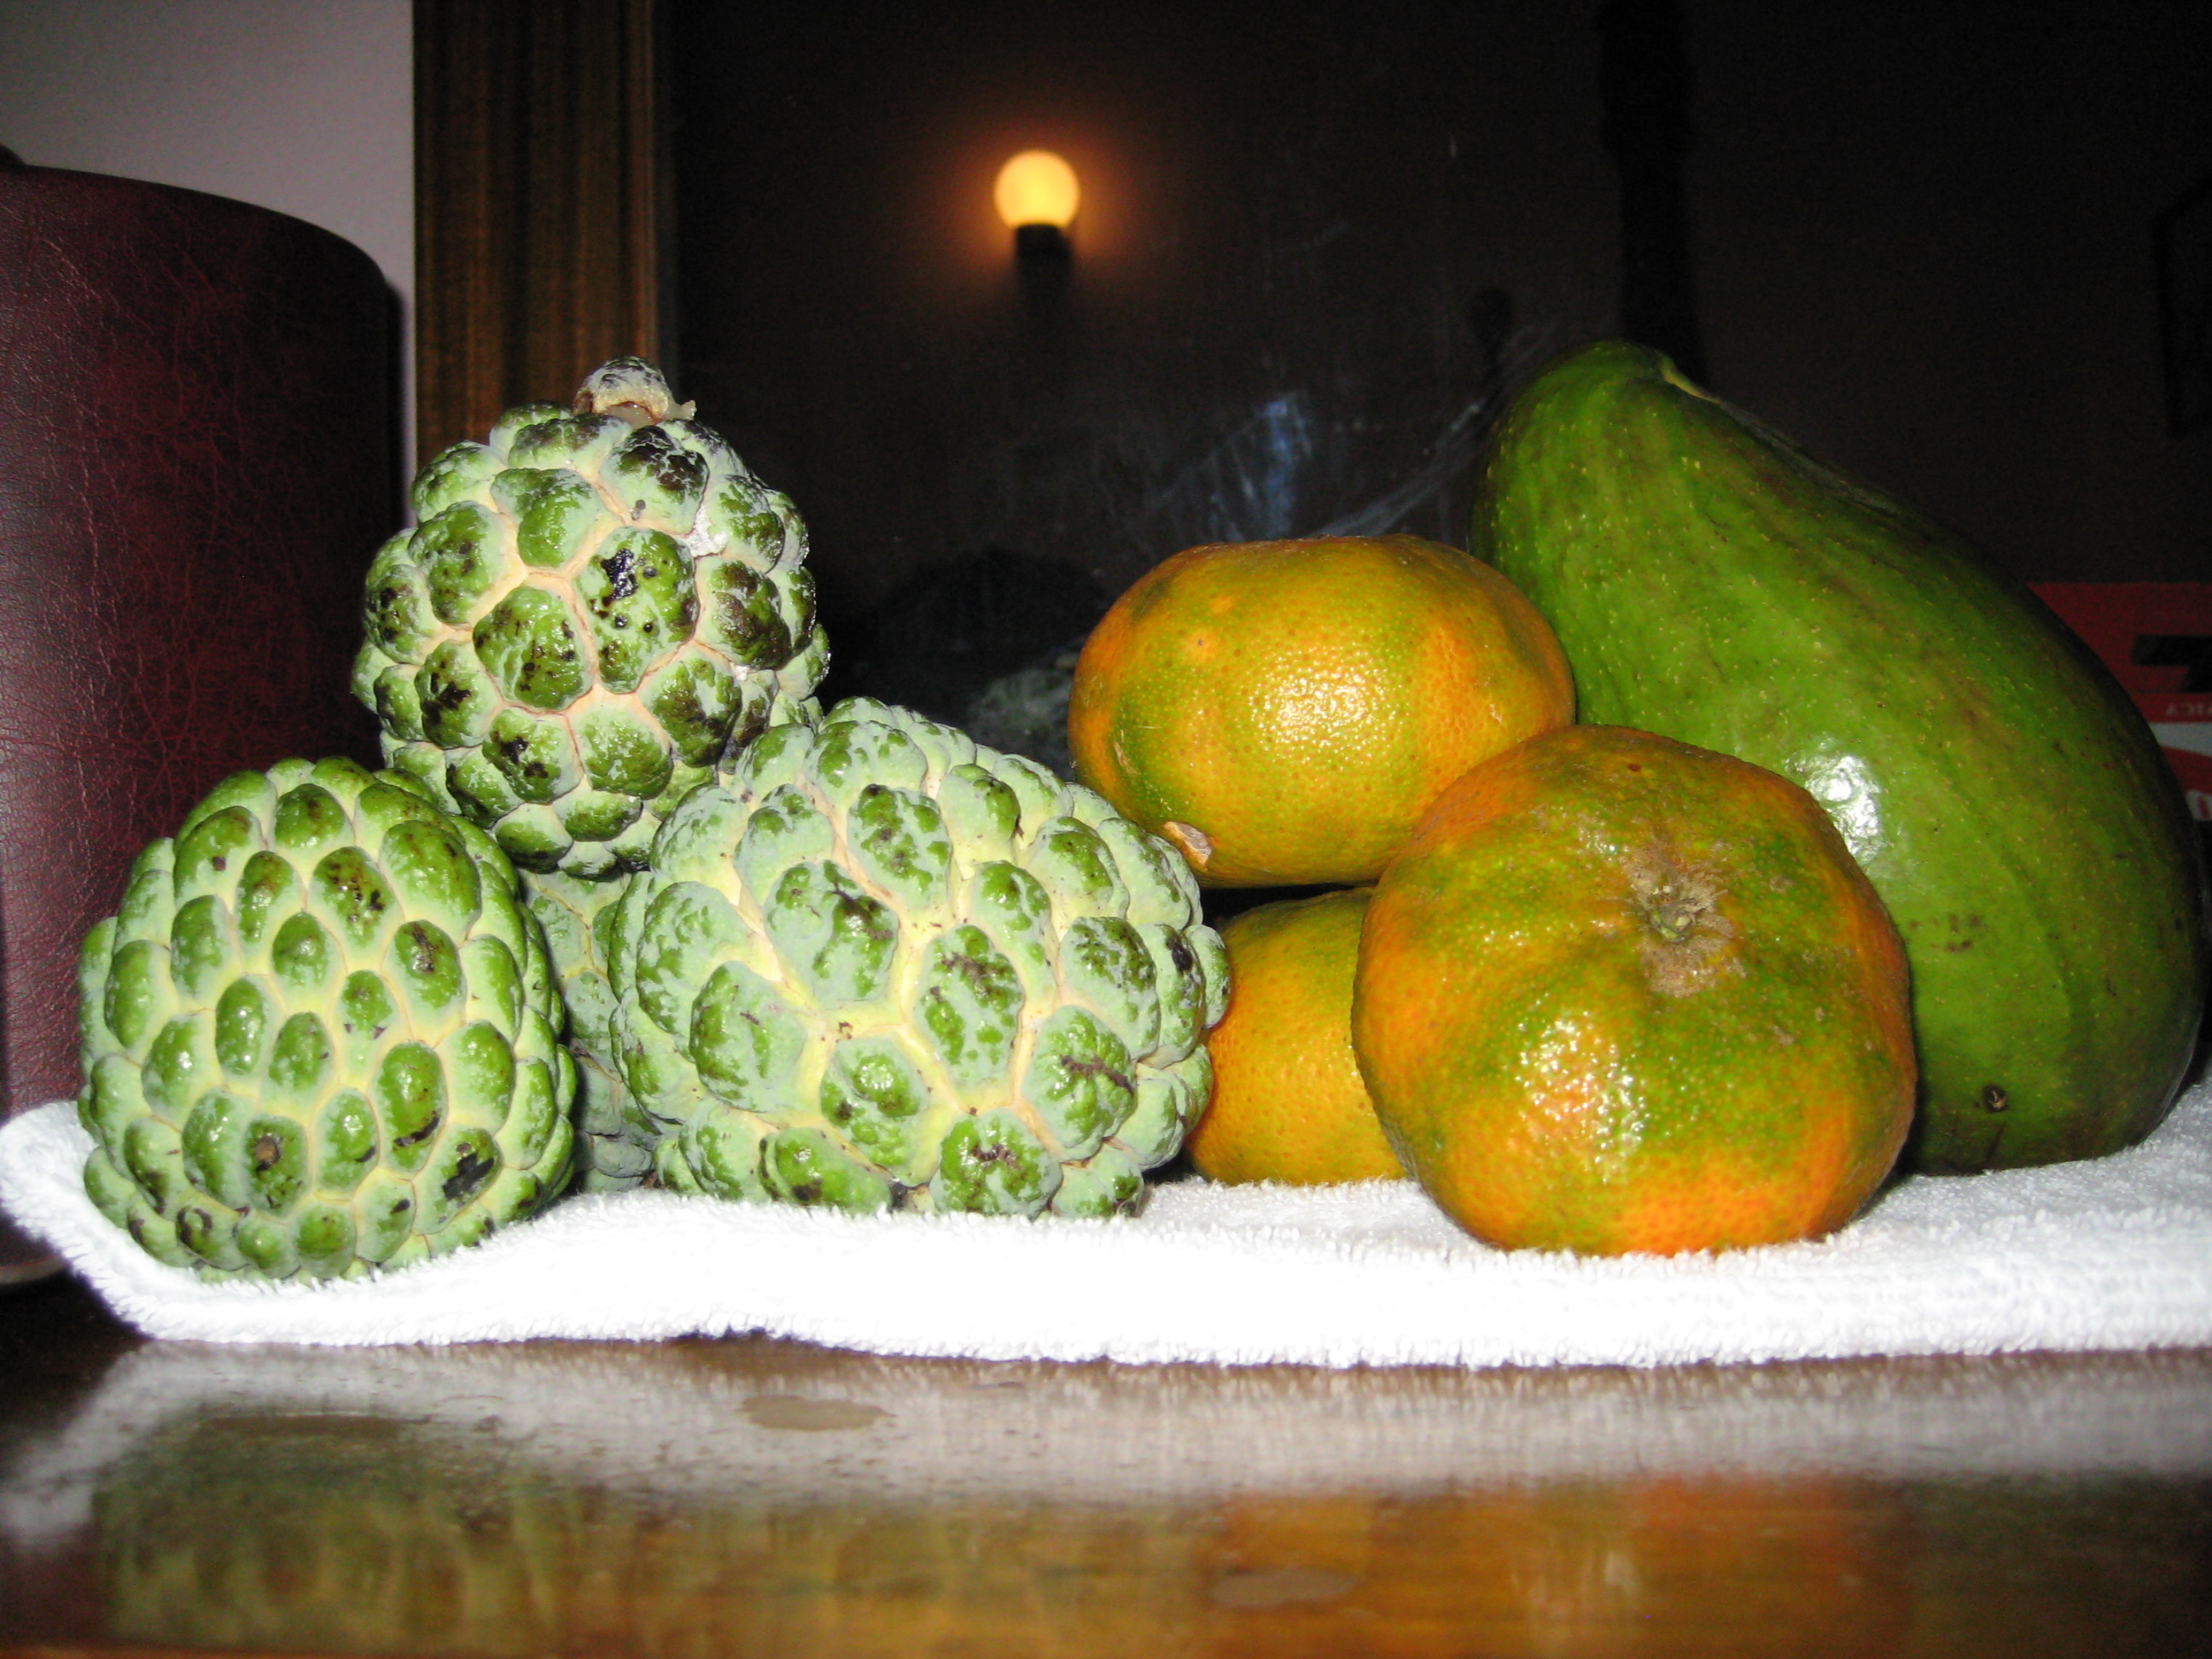 Sweetsop | Wonders of Jamaica